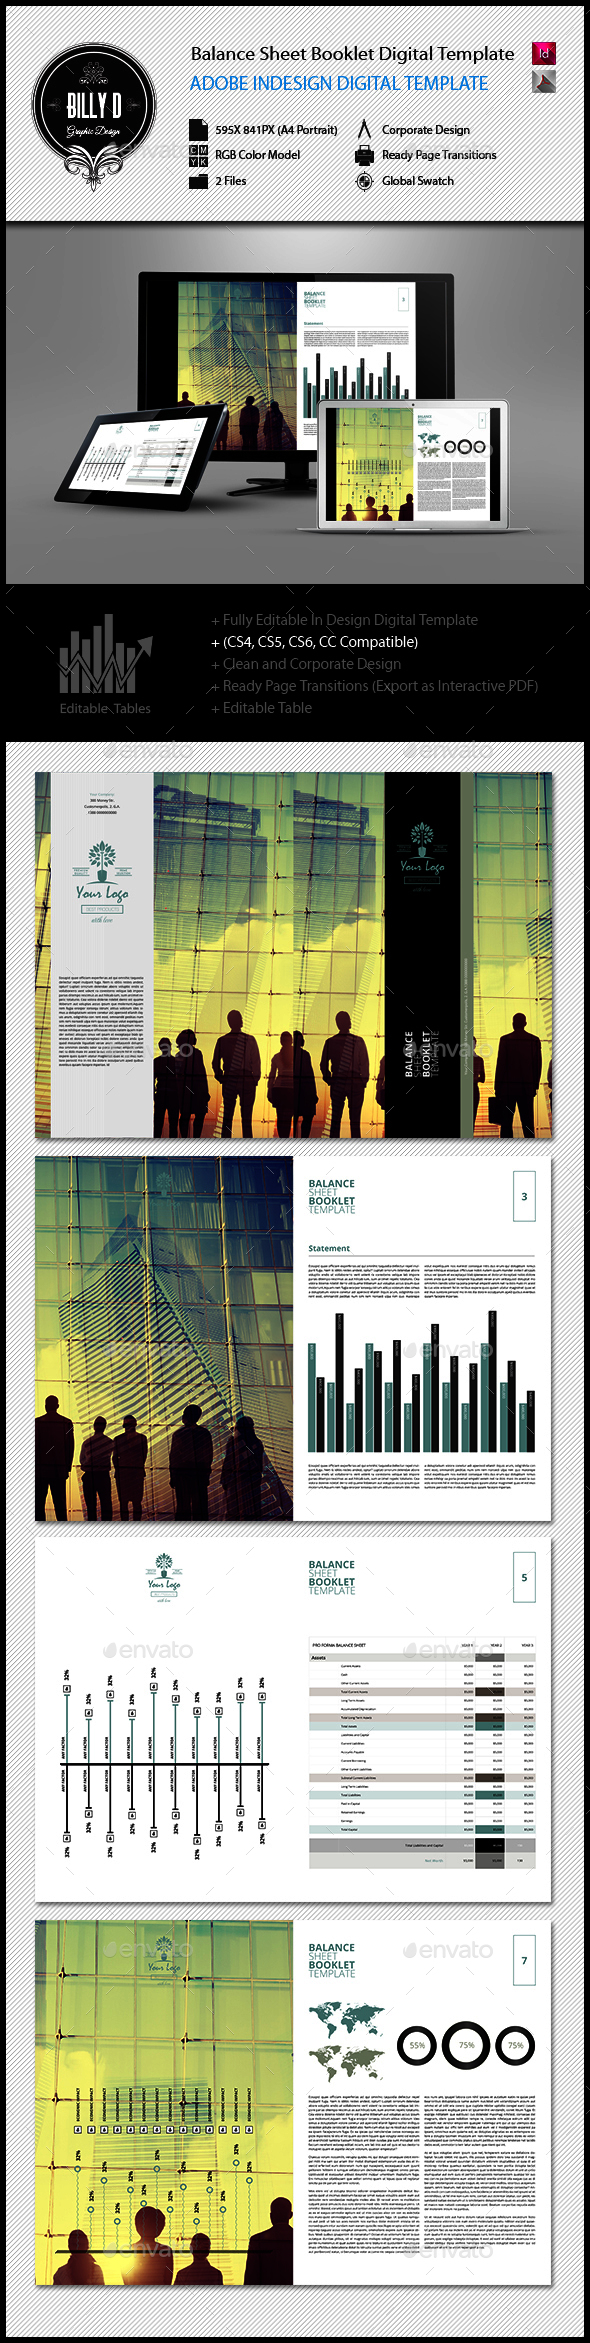 Balance Sheet Booklet Digital Template  Balance Sheet Adobe